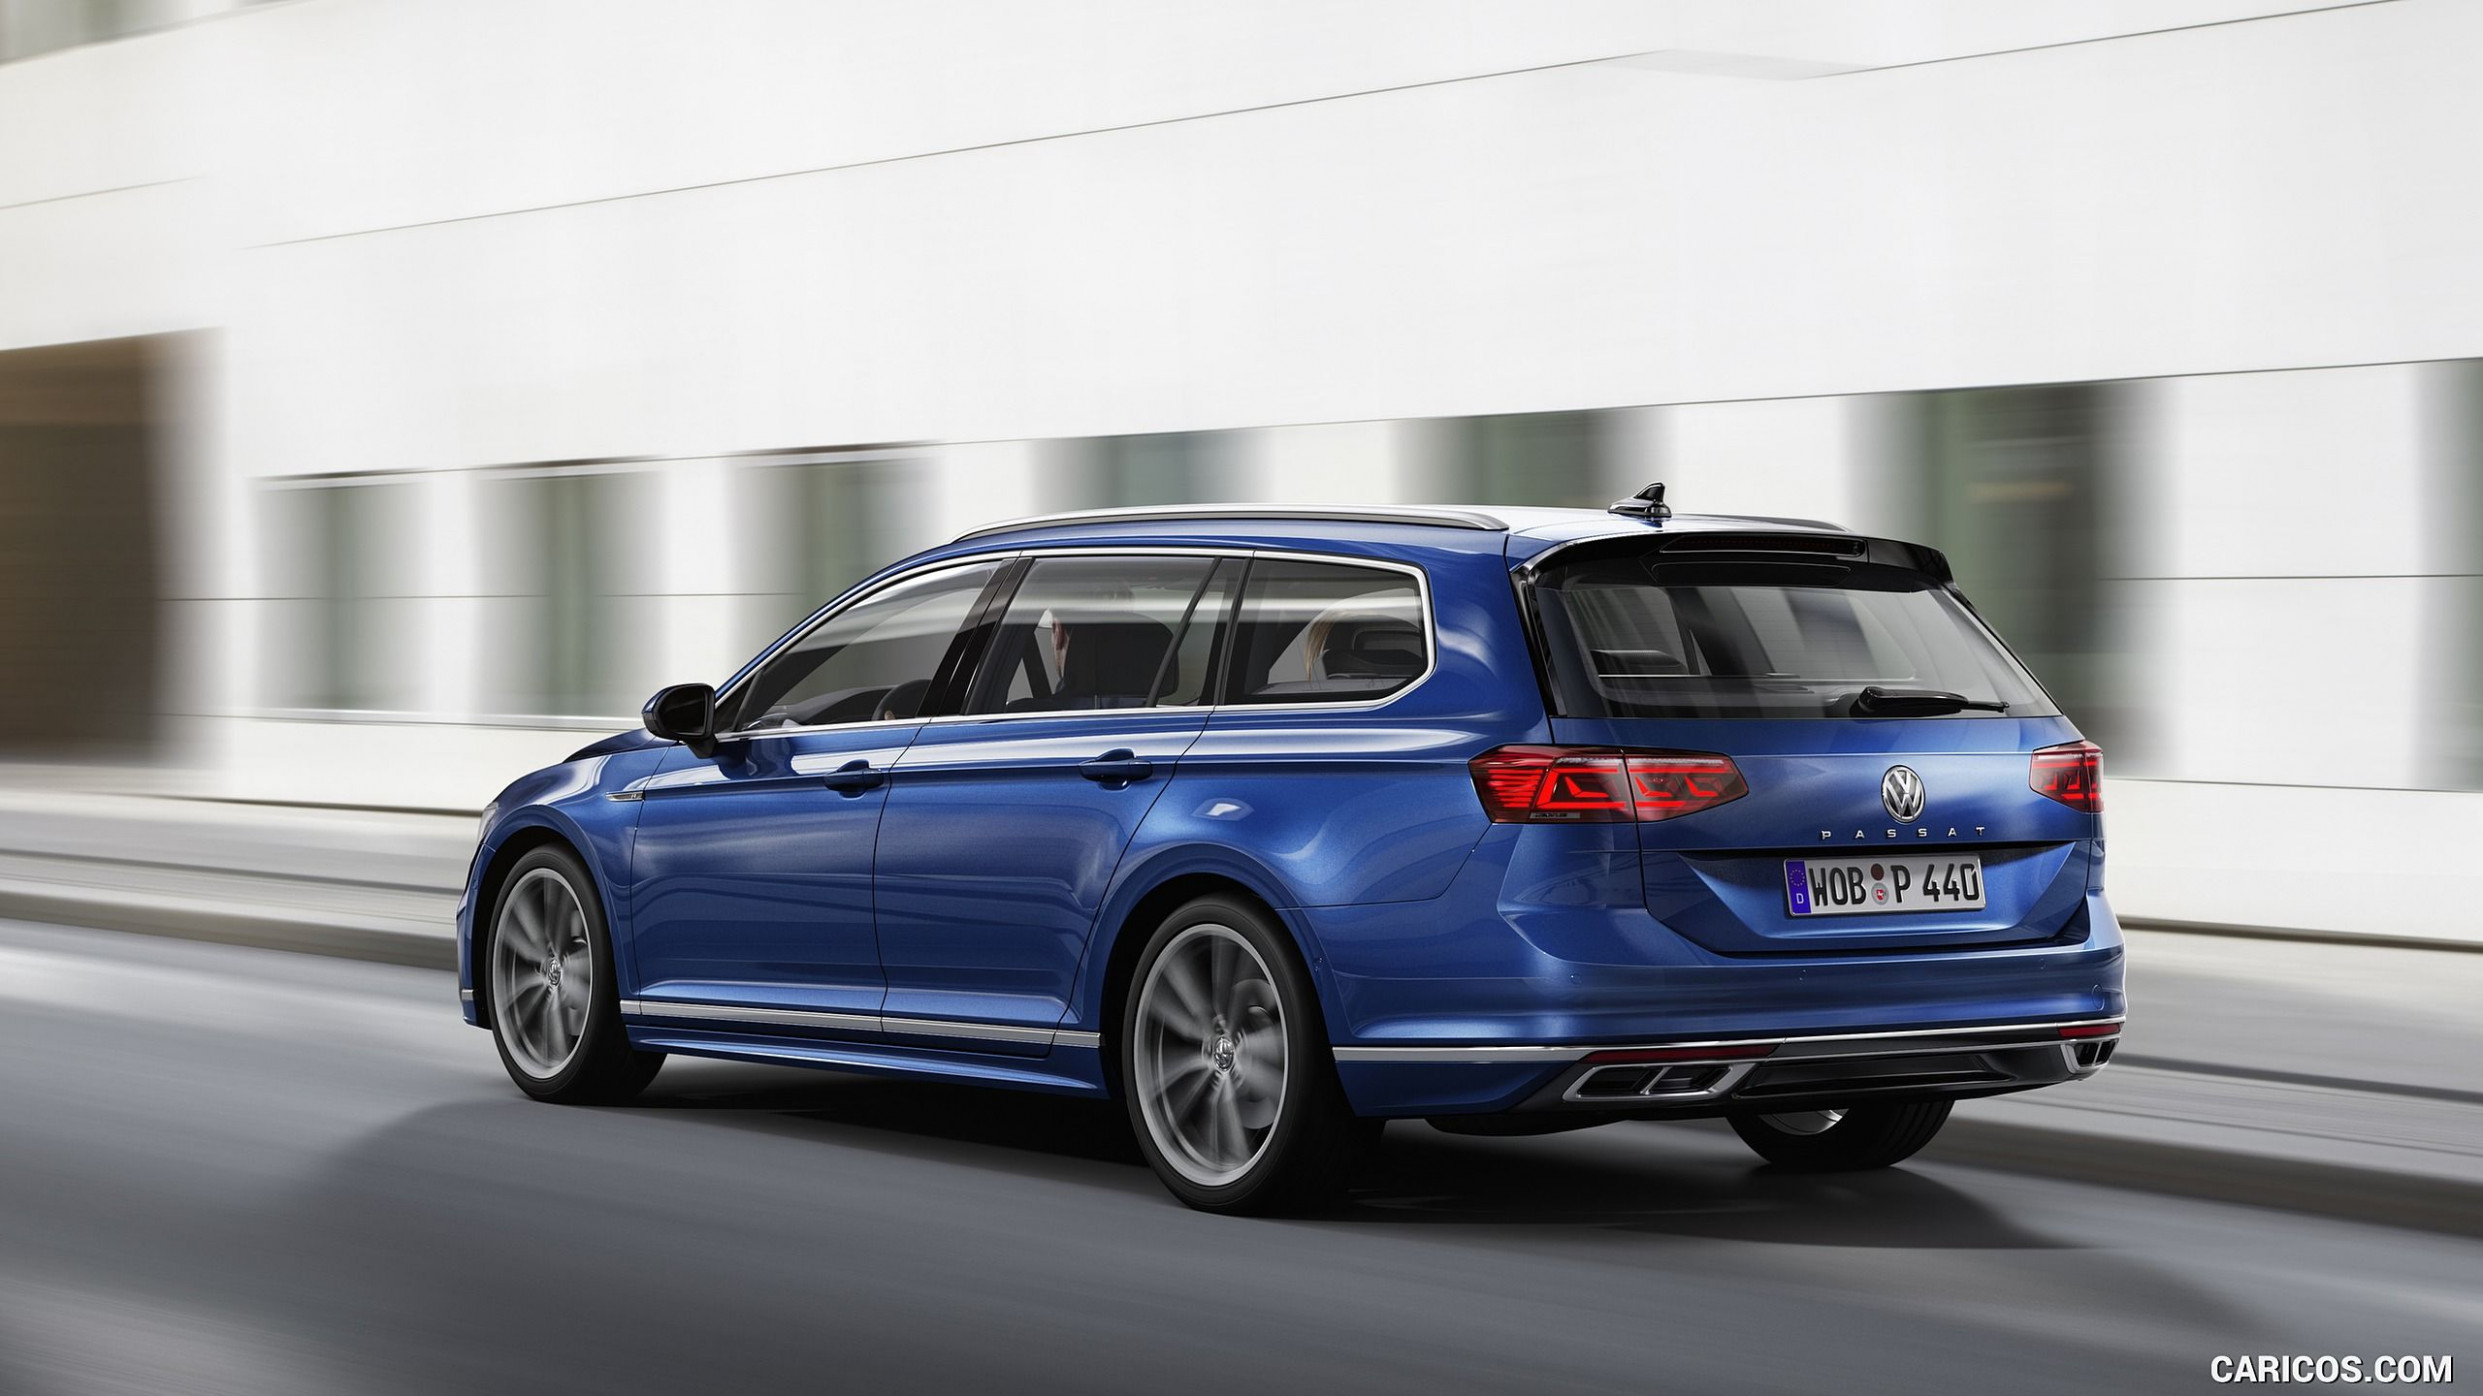 8 Volkswagen Passat Variant (EU-Spec) - Rear Three-Quarter HD ...